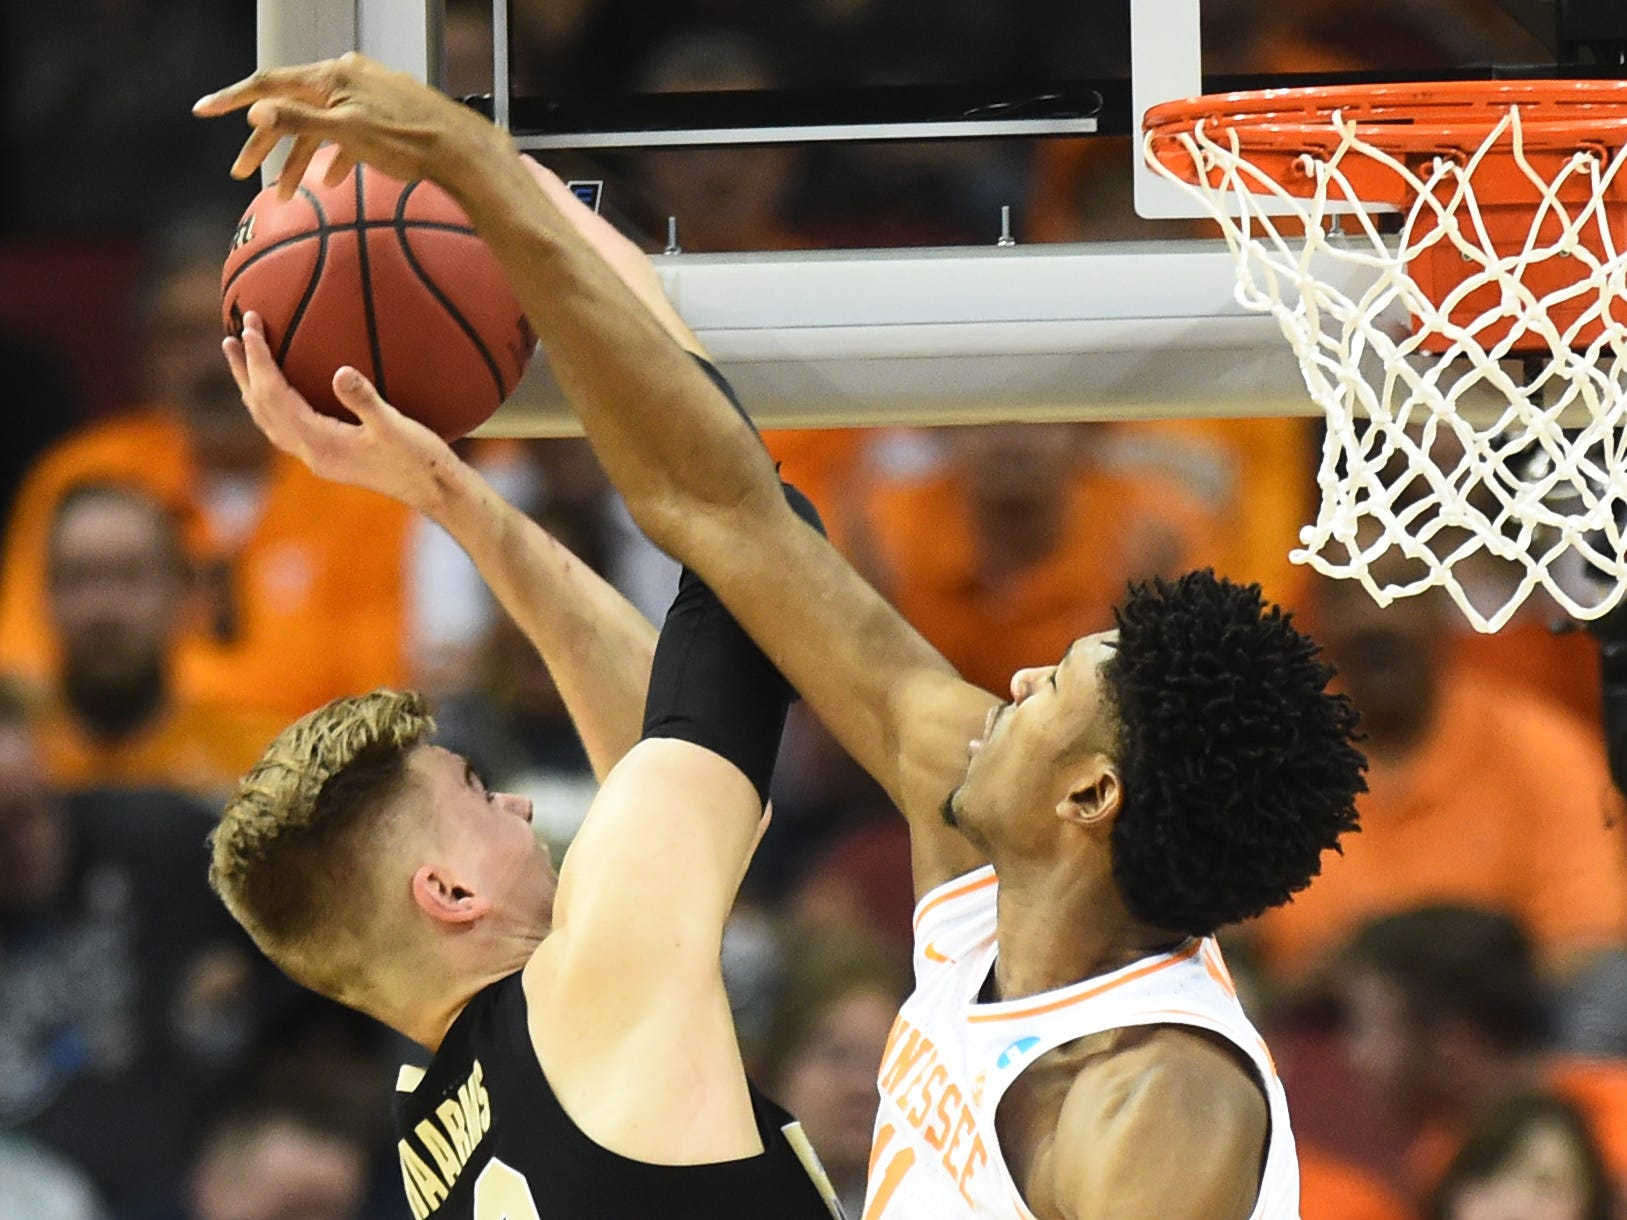 Tennessee forward Kyle Alexander (11) defends as Purdue center Matt Haarms (32) goes to the baske during their Sweet 16 game in the NCAA Tournament Thursday, March 28, 2019, at the KFC Yum! Center in Louisville, Ky.